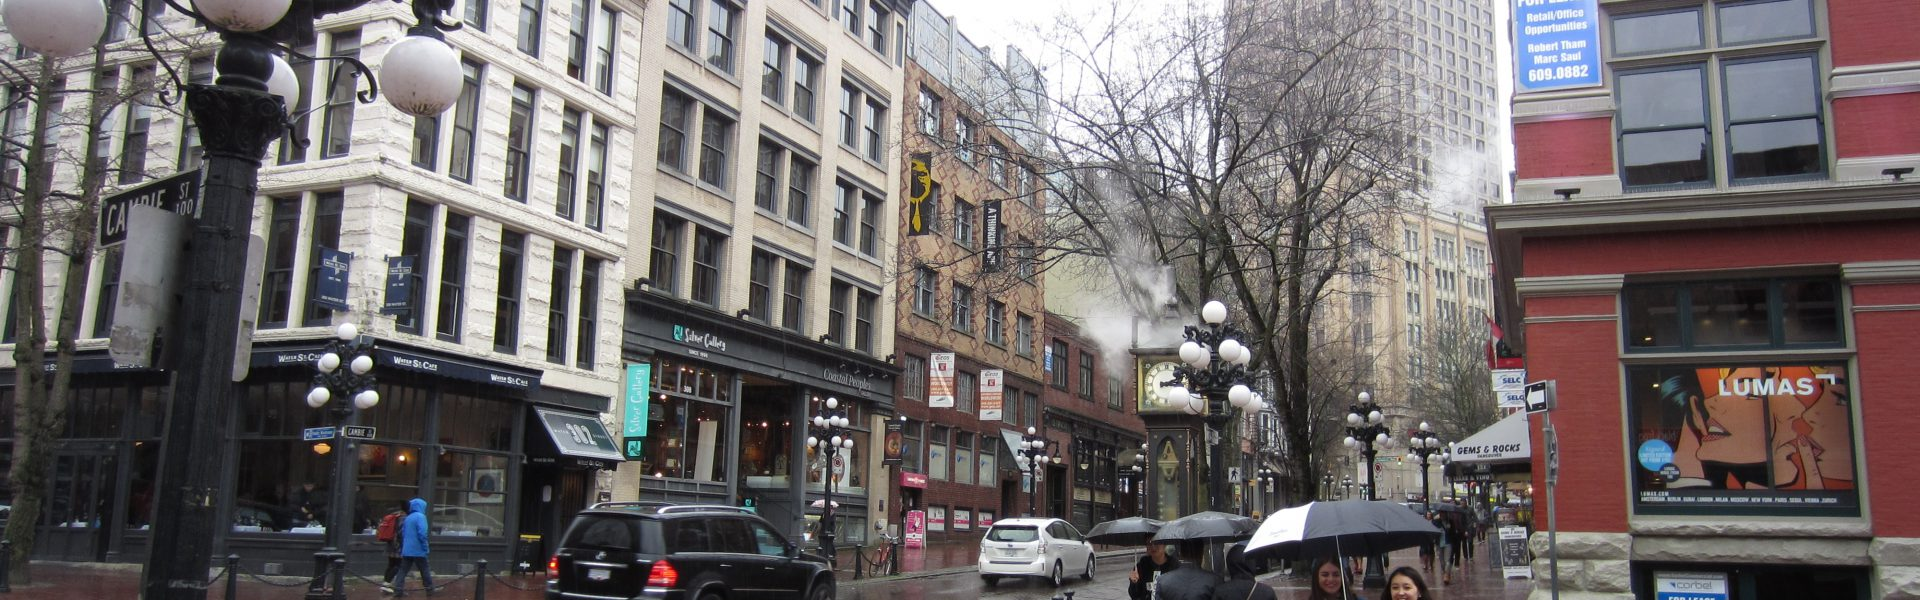 gastown-in-the-rain